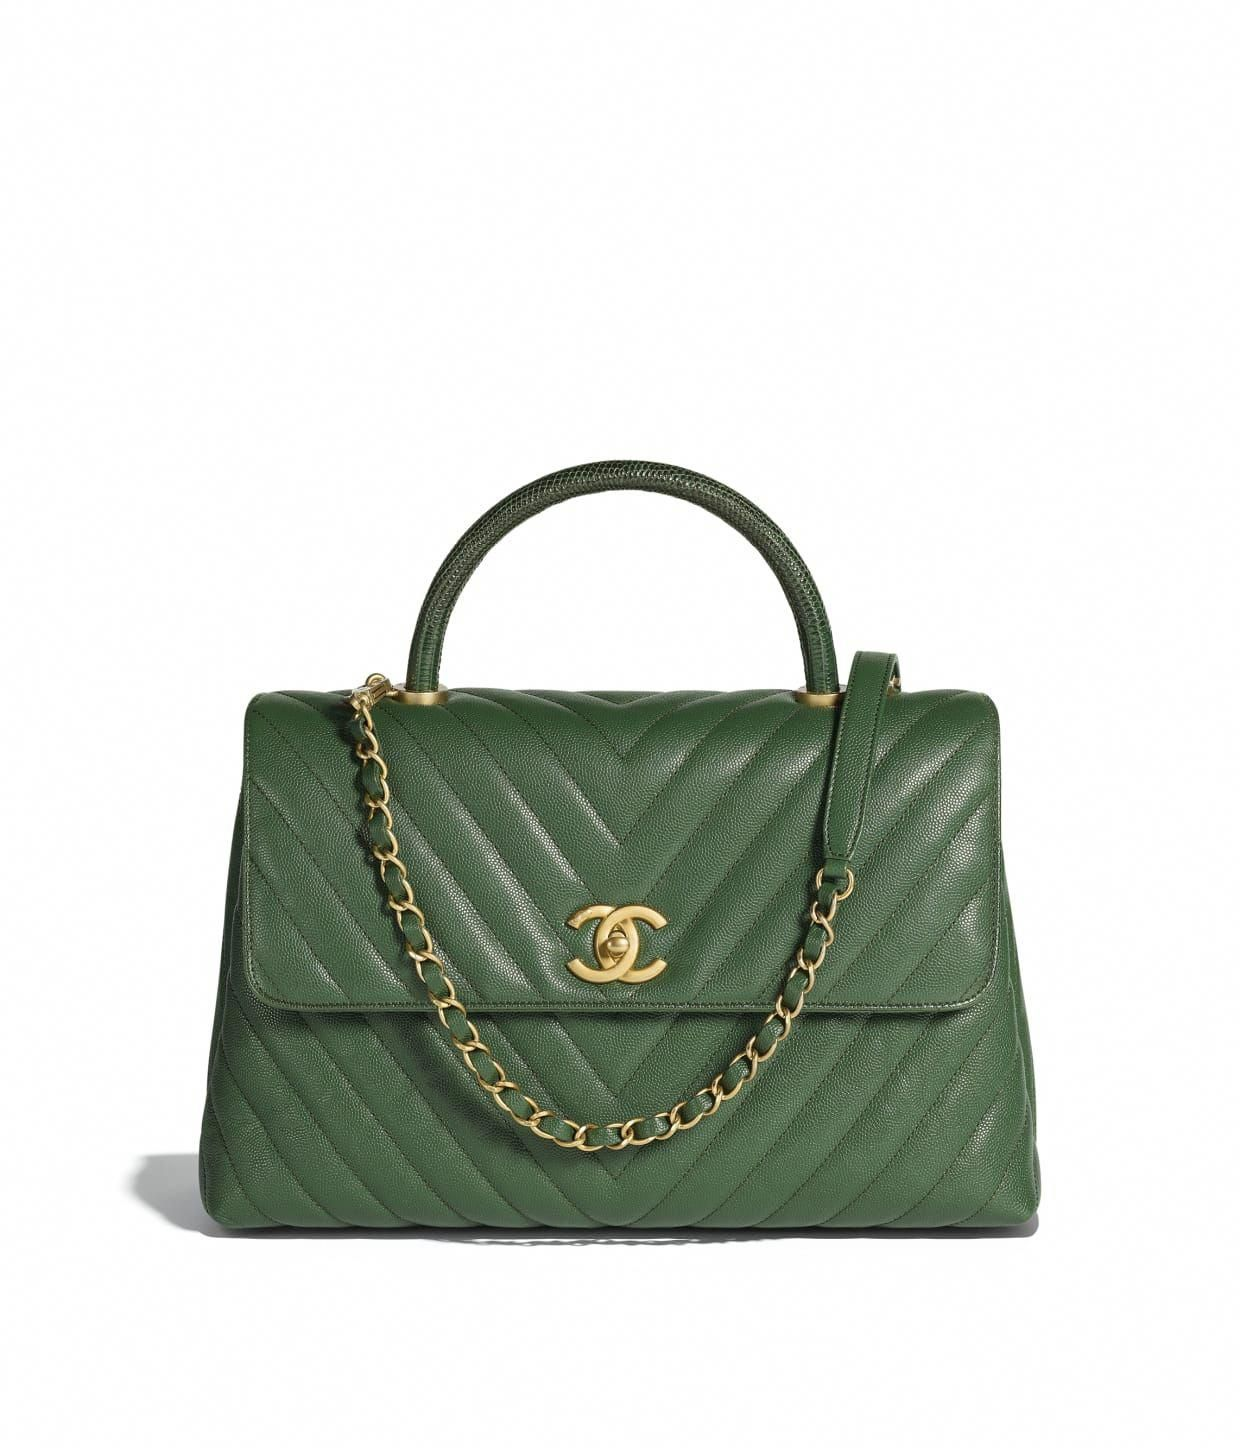 fd5e809e1a55 Grained Calfskin, Lizard & Gold-Tone Metal Dark Green Large Flap Bag with Top  Handle | CHANEL